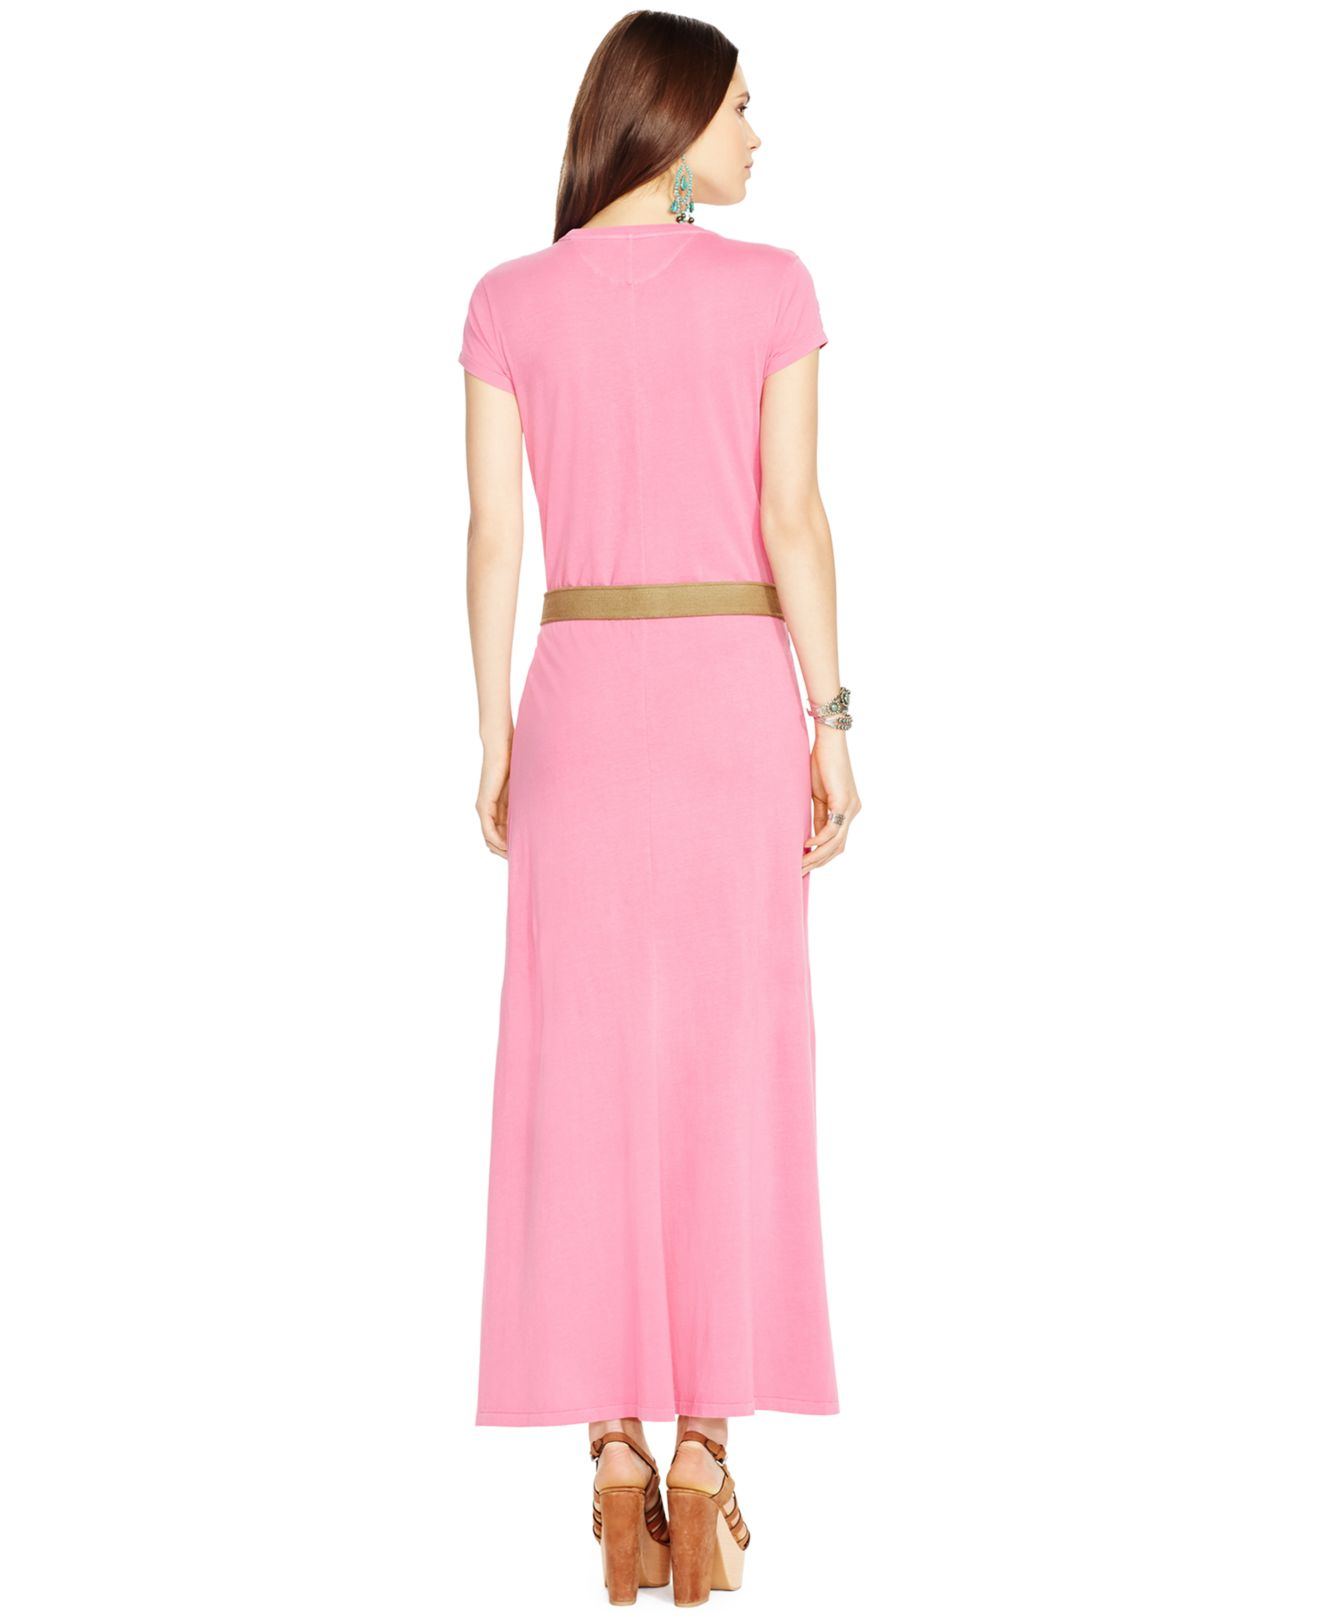 39b68df1d0 Polo Ralph Lauren Cap-Sleeve Maxi Dress in Pink - Lyst